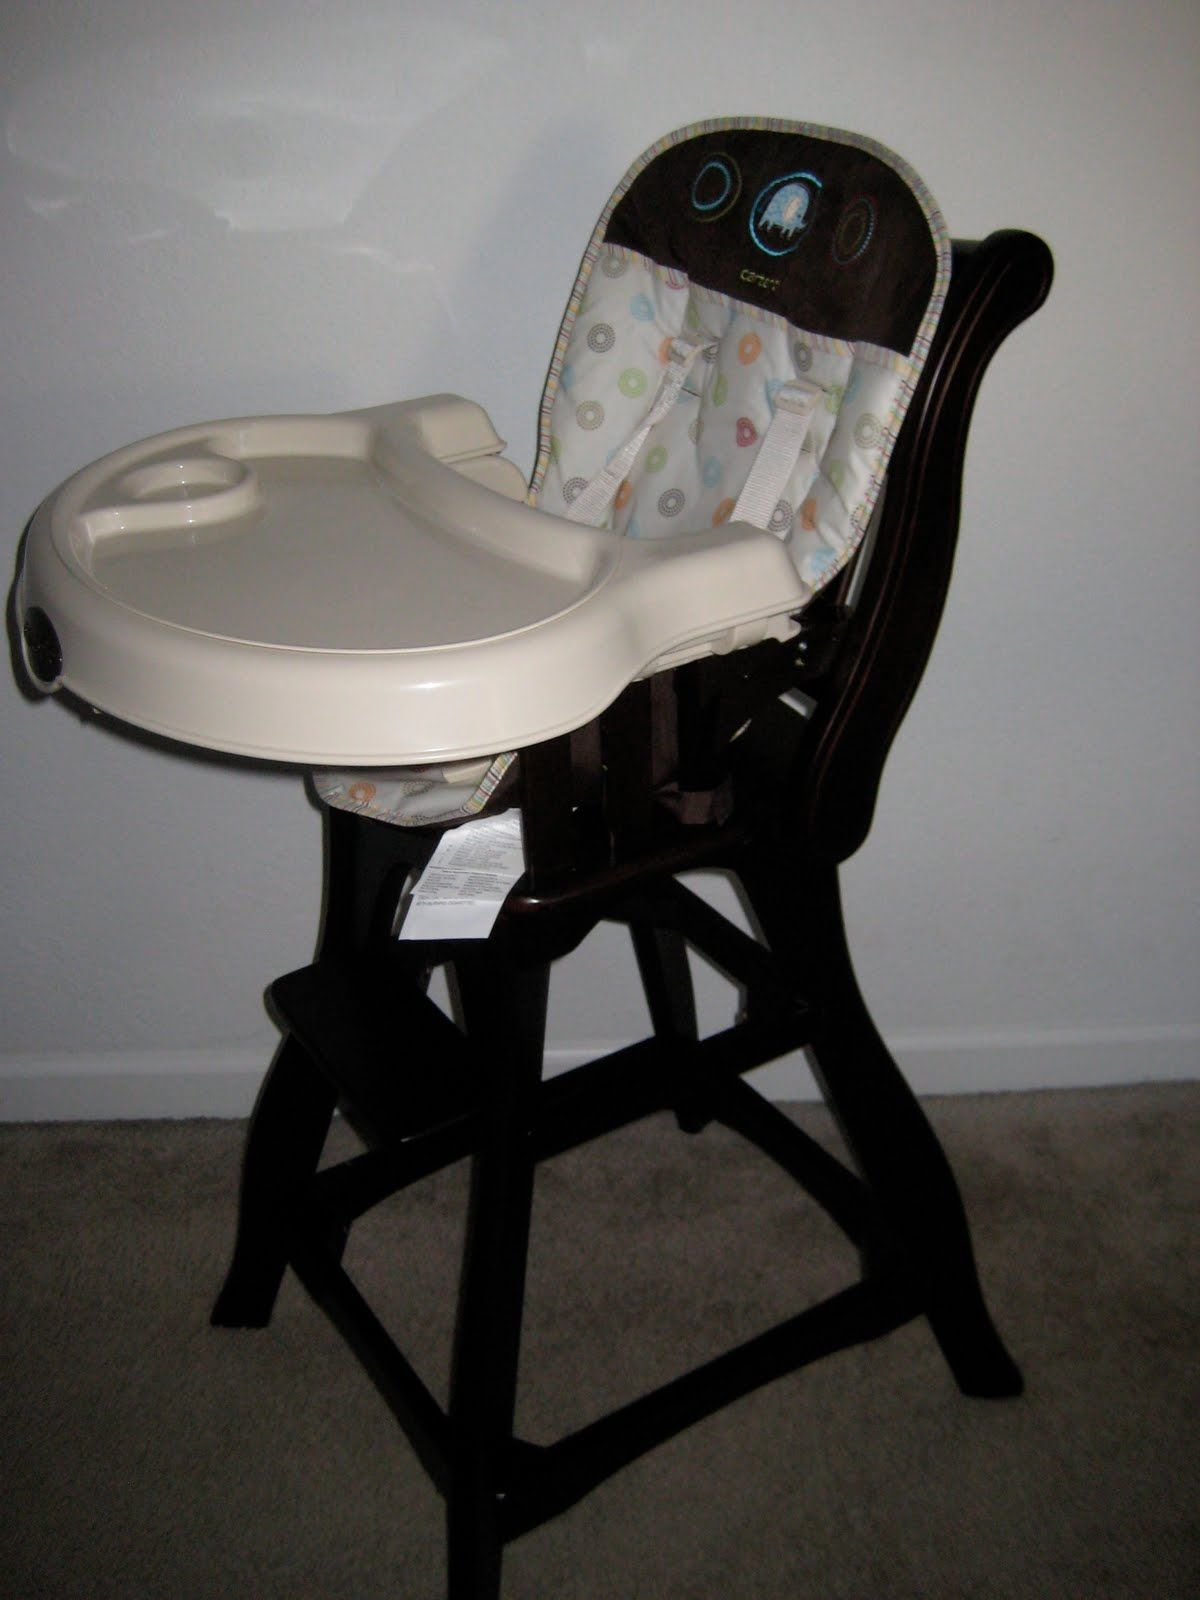 carter high chair replacement parts bedroom chairs nz s wooden expert event carters wood http jeremyeatonart com rh za